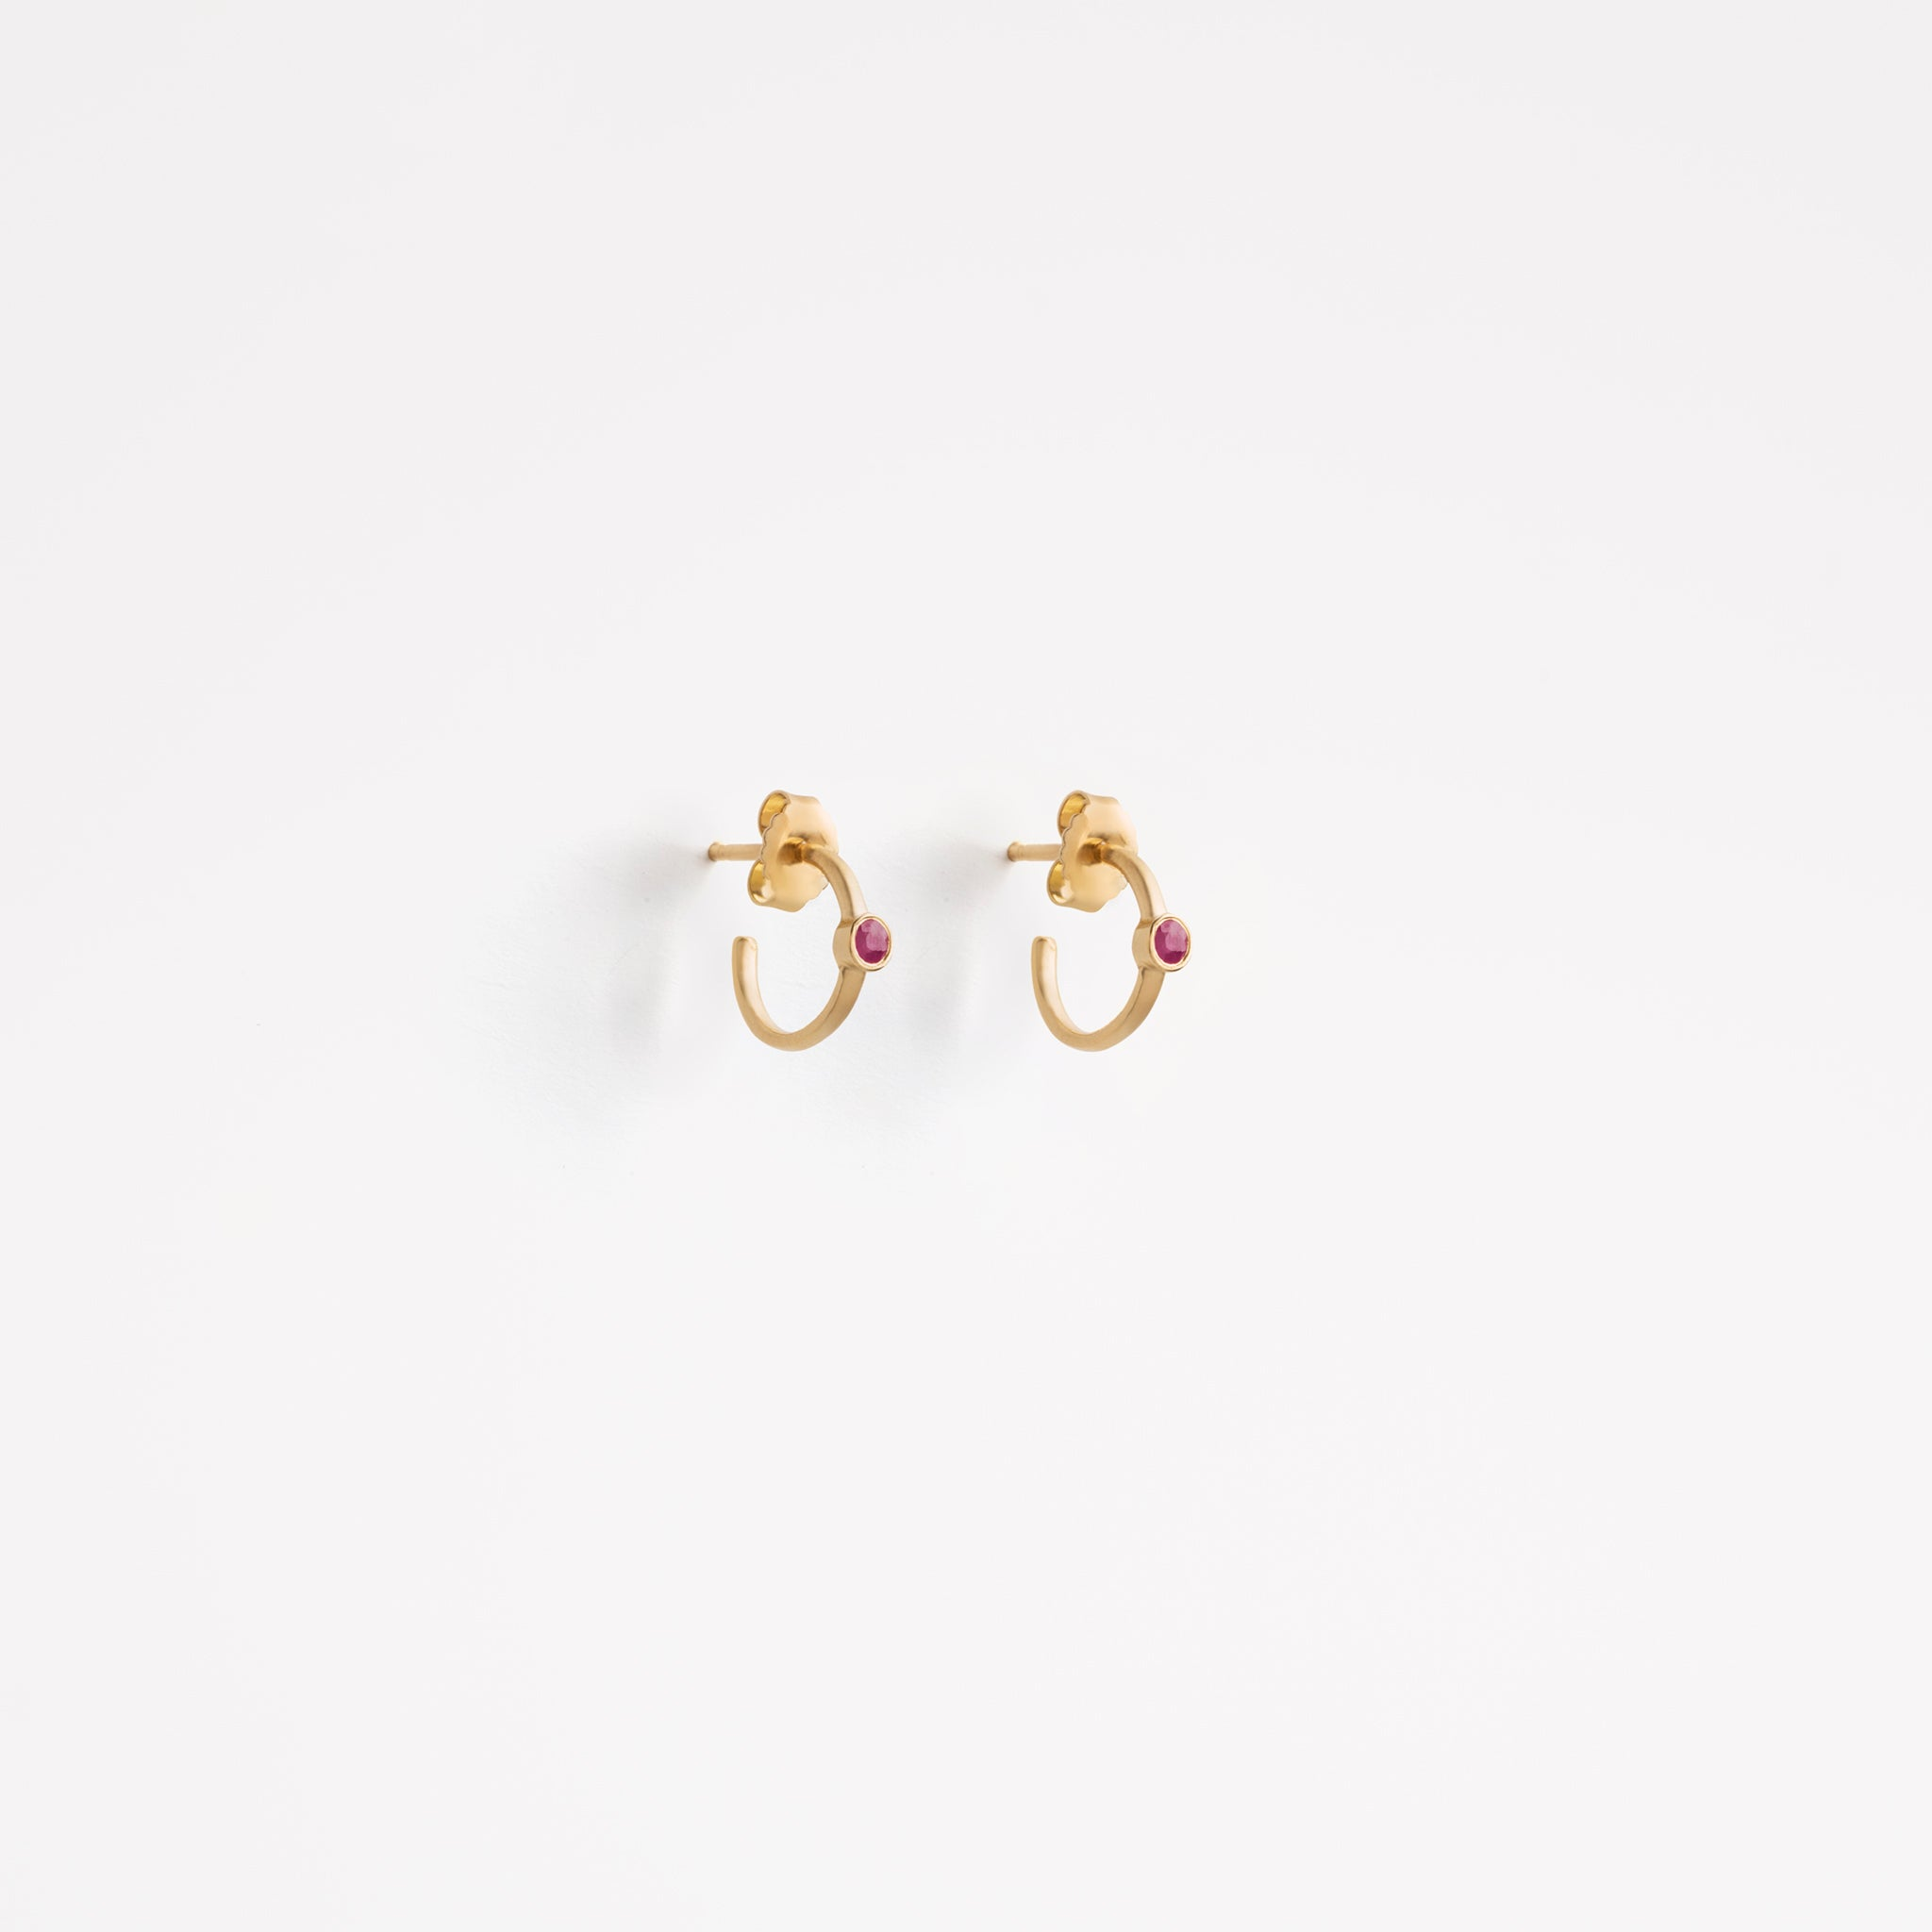 Wanderlust Life small gold huggie hoops set with semi precious ruby gemstones. Perfect gold hoop for stacking and layering. Wanderlust Life jewellery designed in the UK.